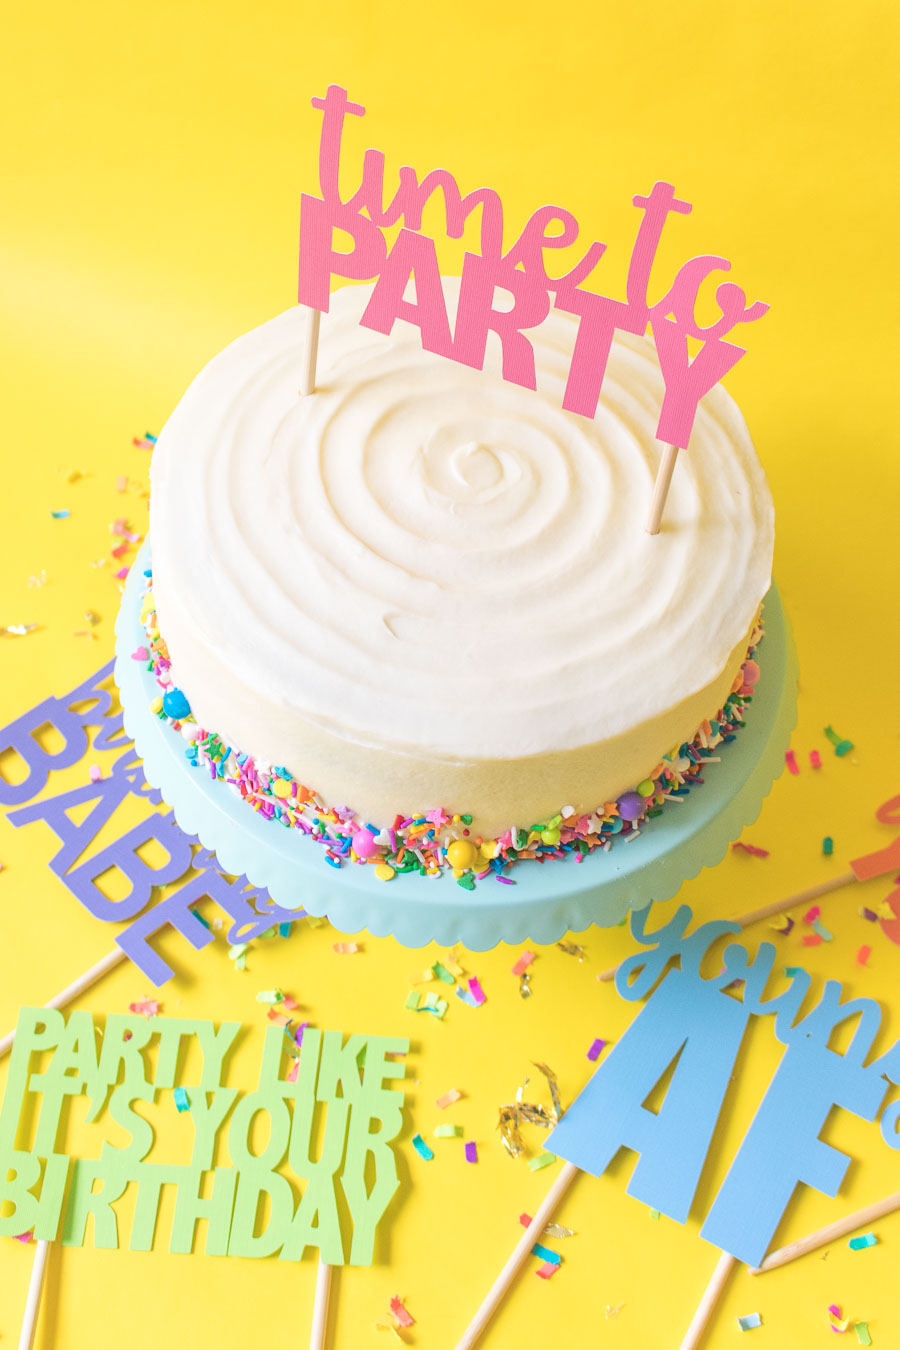 Printable Cake Toppers For Birthdays Free Svg Templates